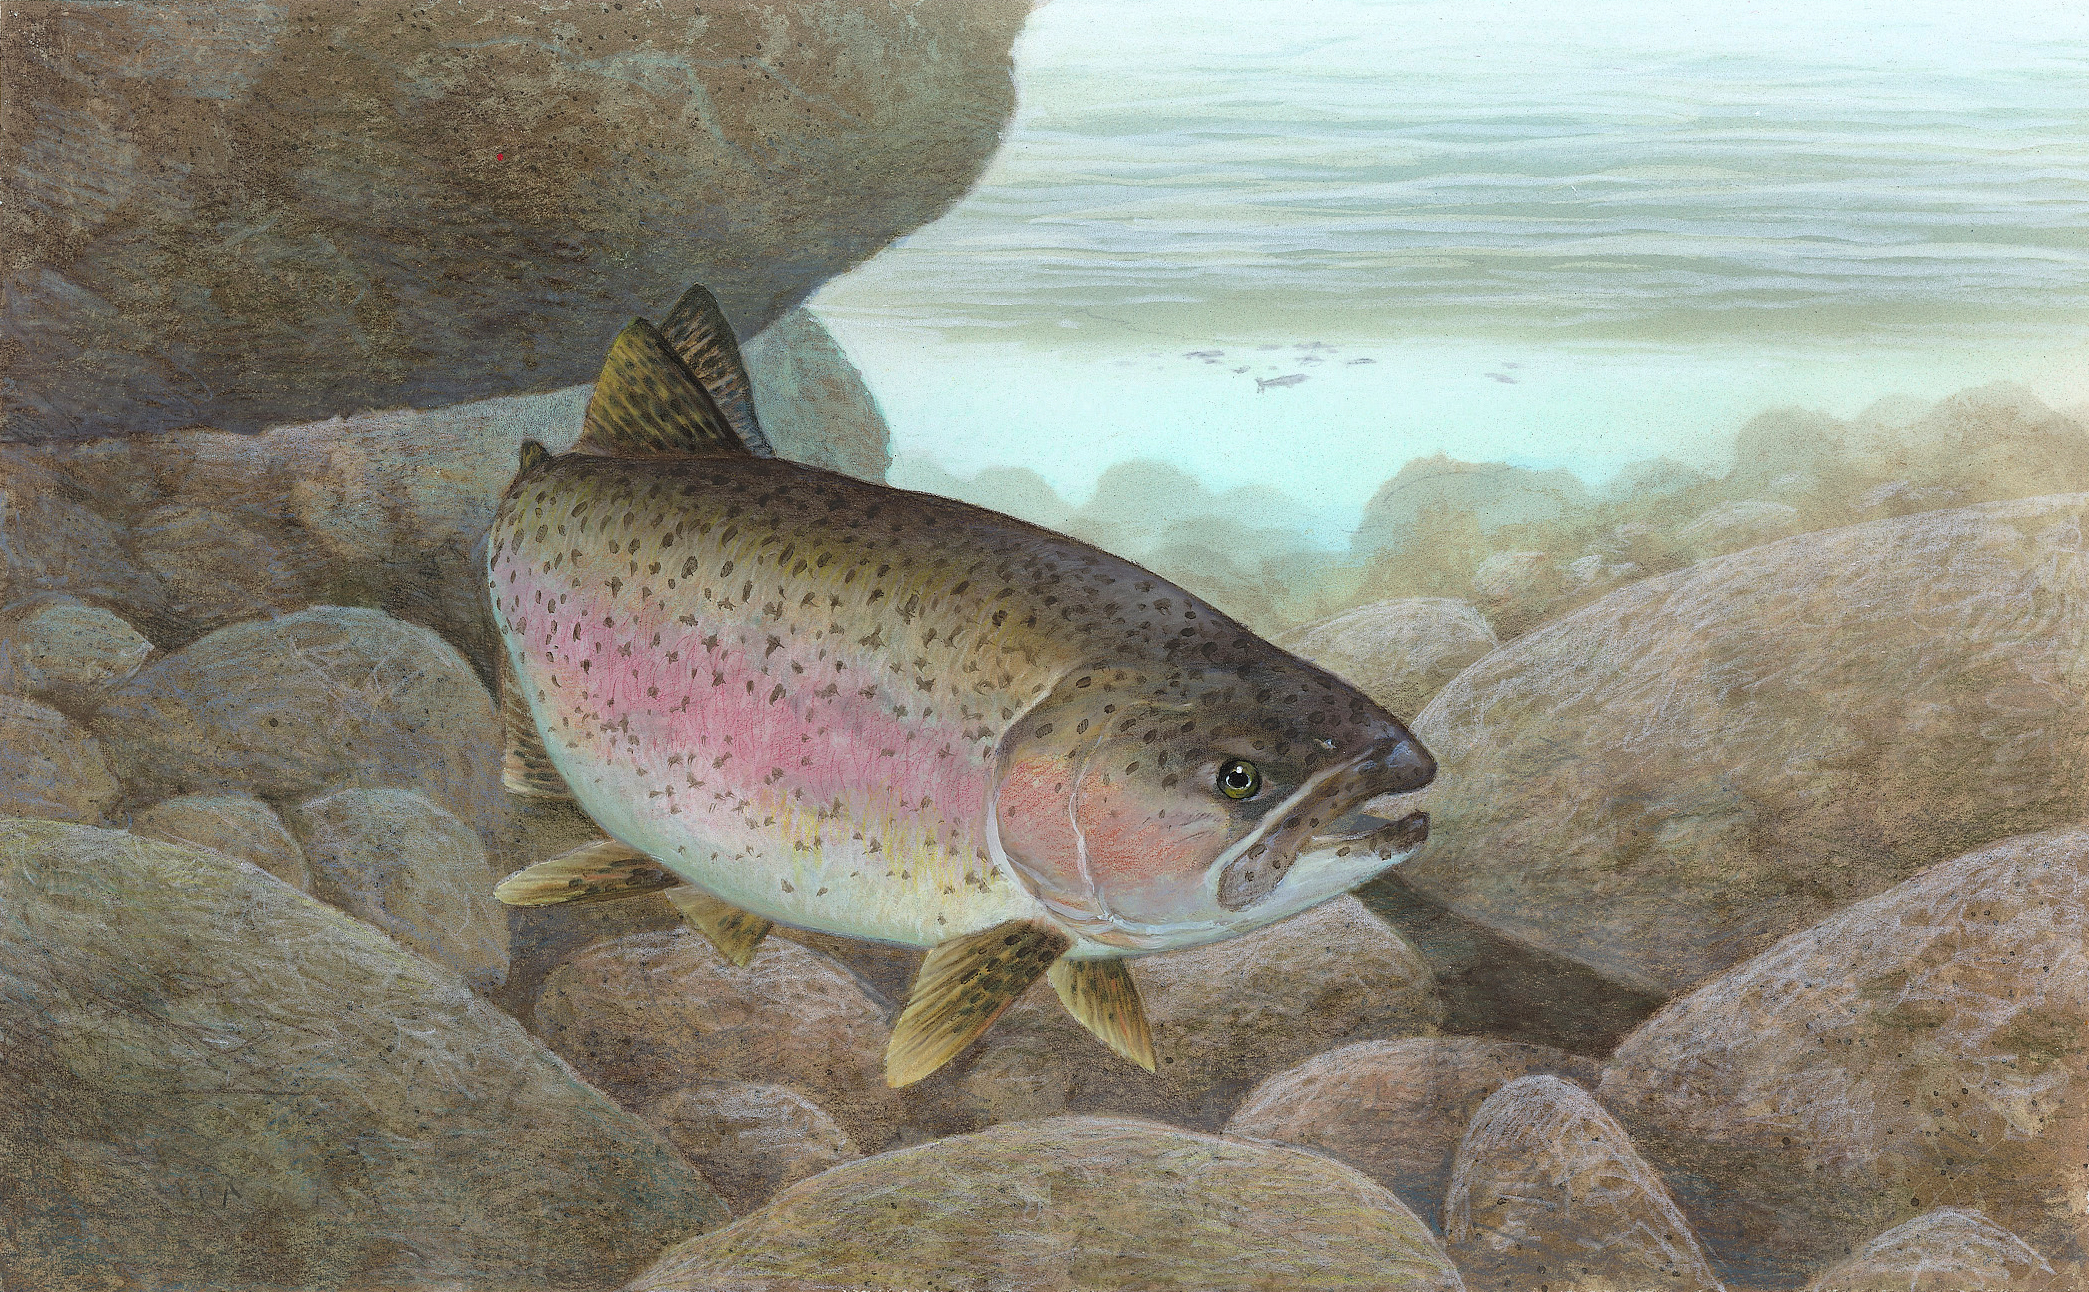 Rainbow trout aquaponics wiki fandom powered by wikia for How to fish for rainbow trout